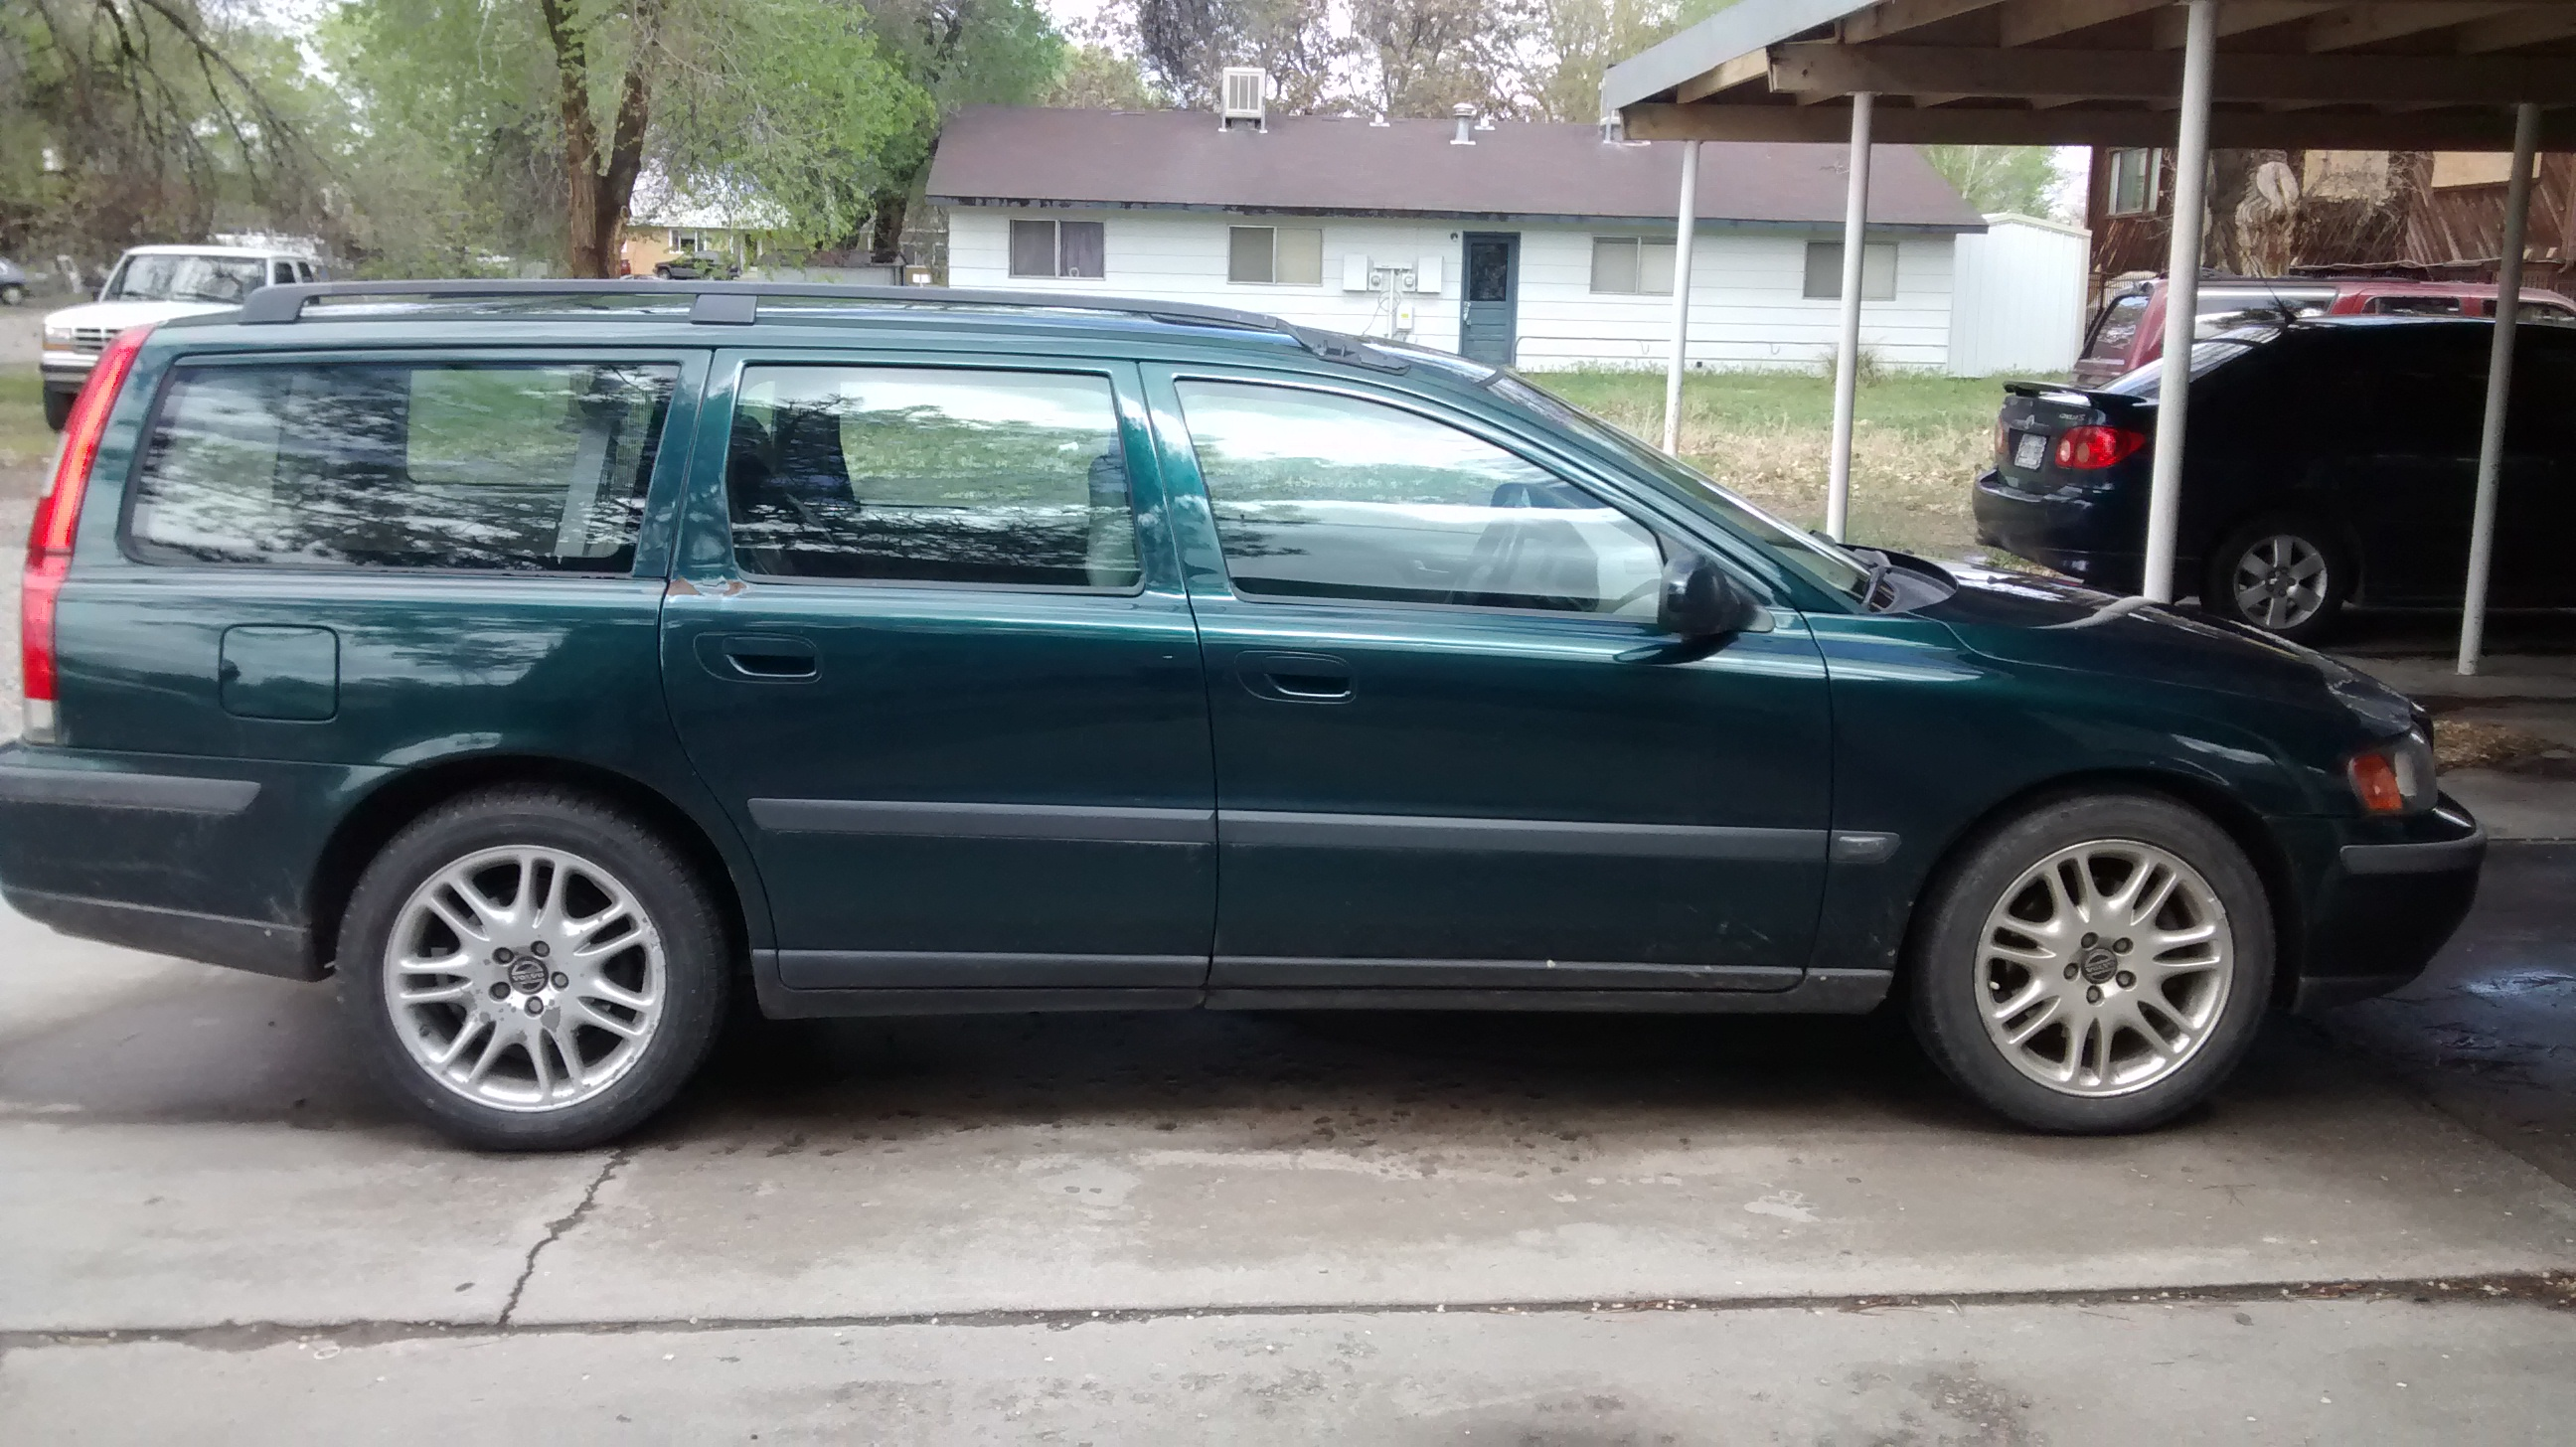 Craigslist Cars For Sale By Owner In Ventura County Cars